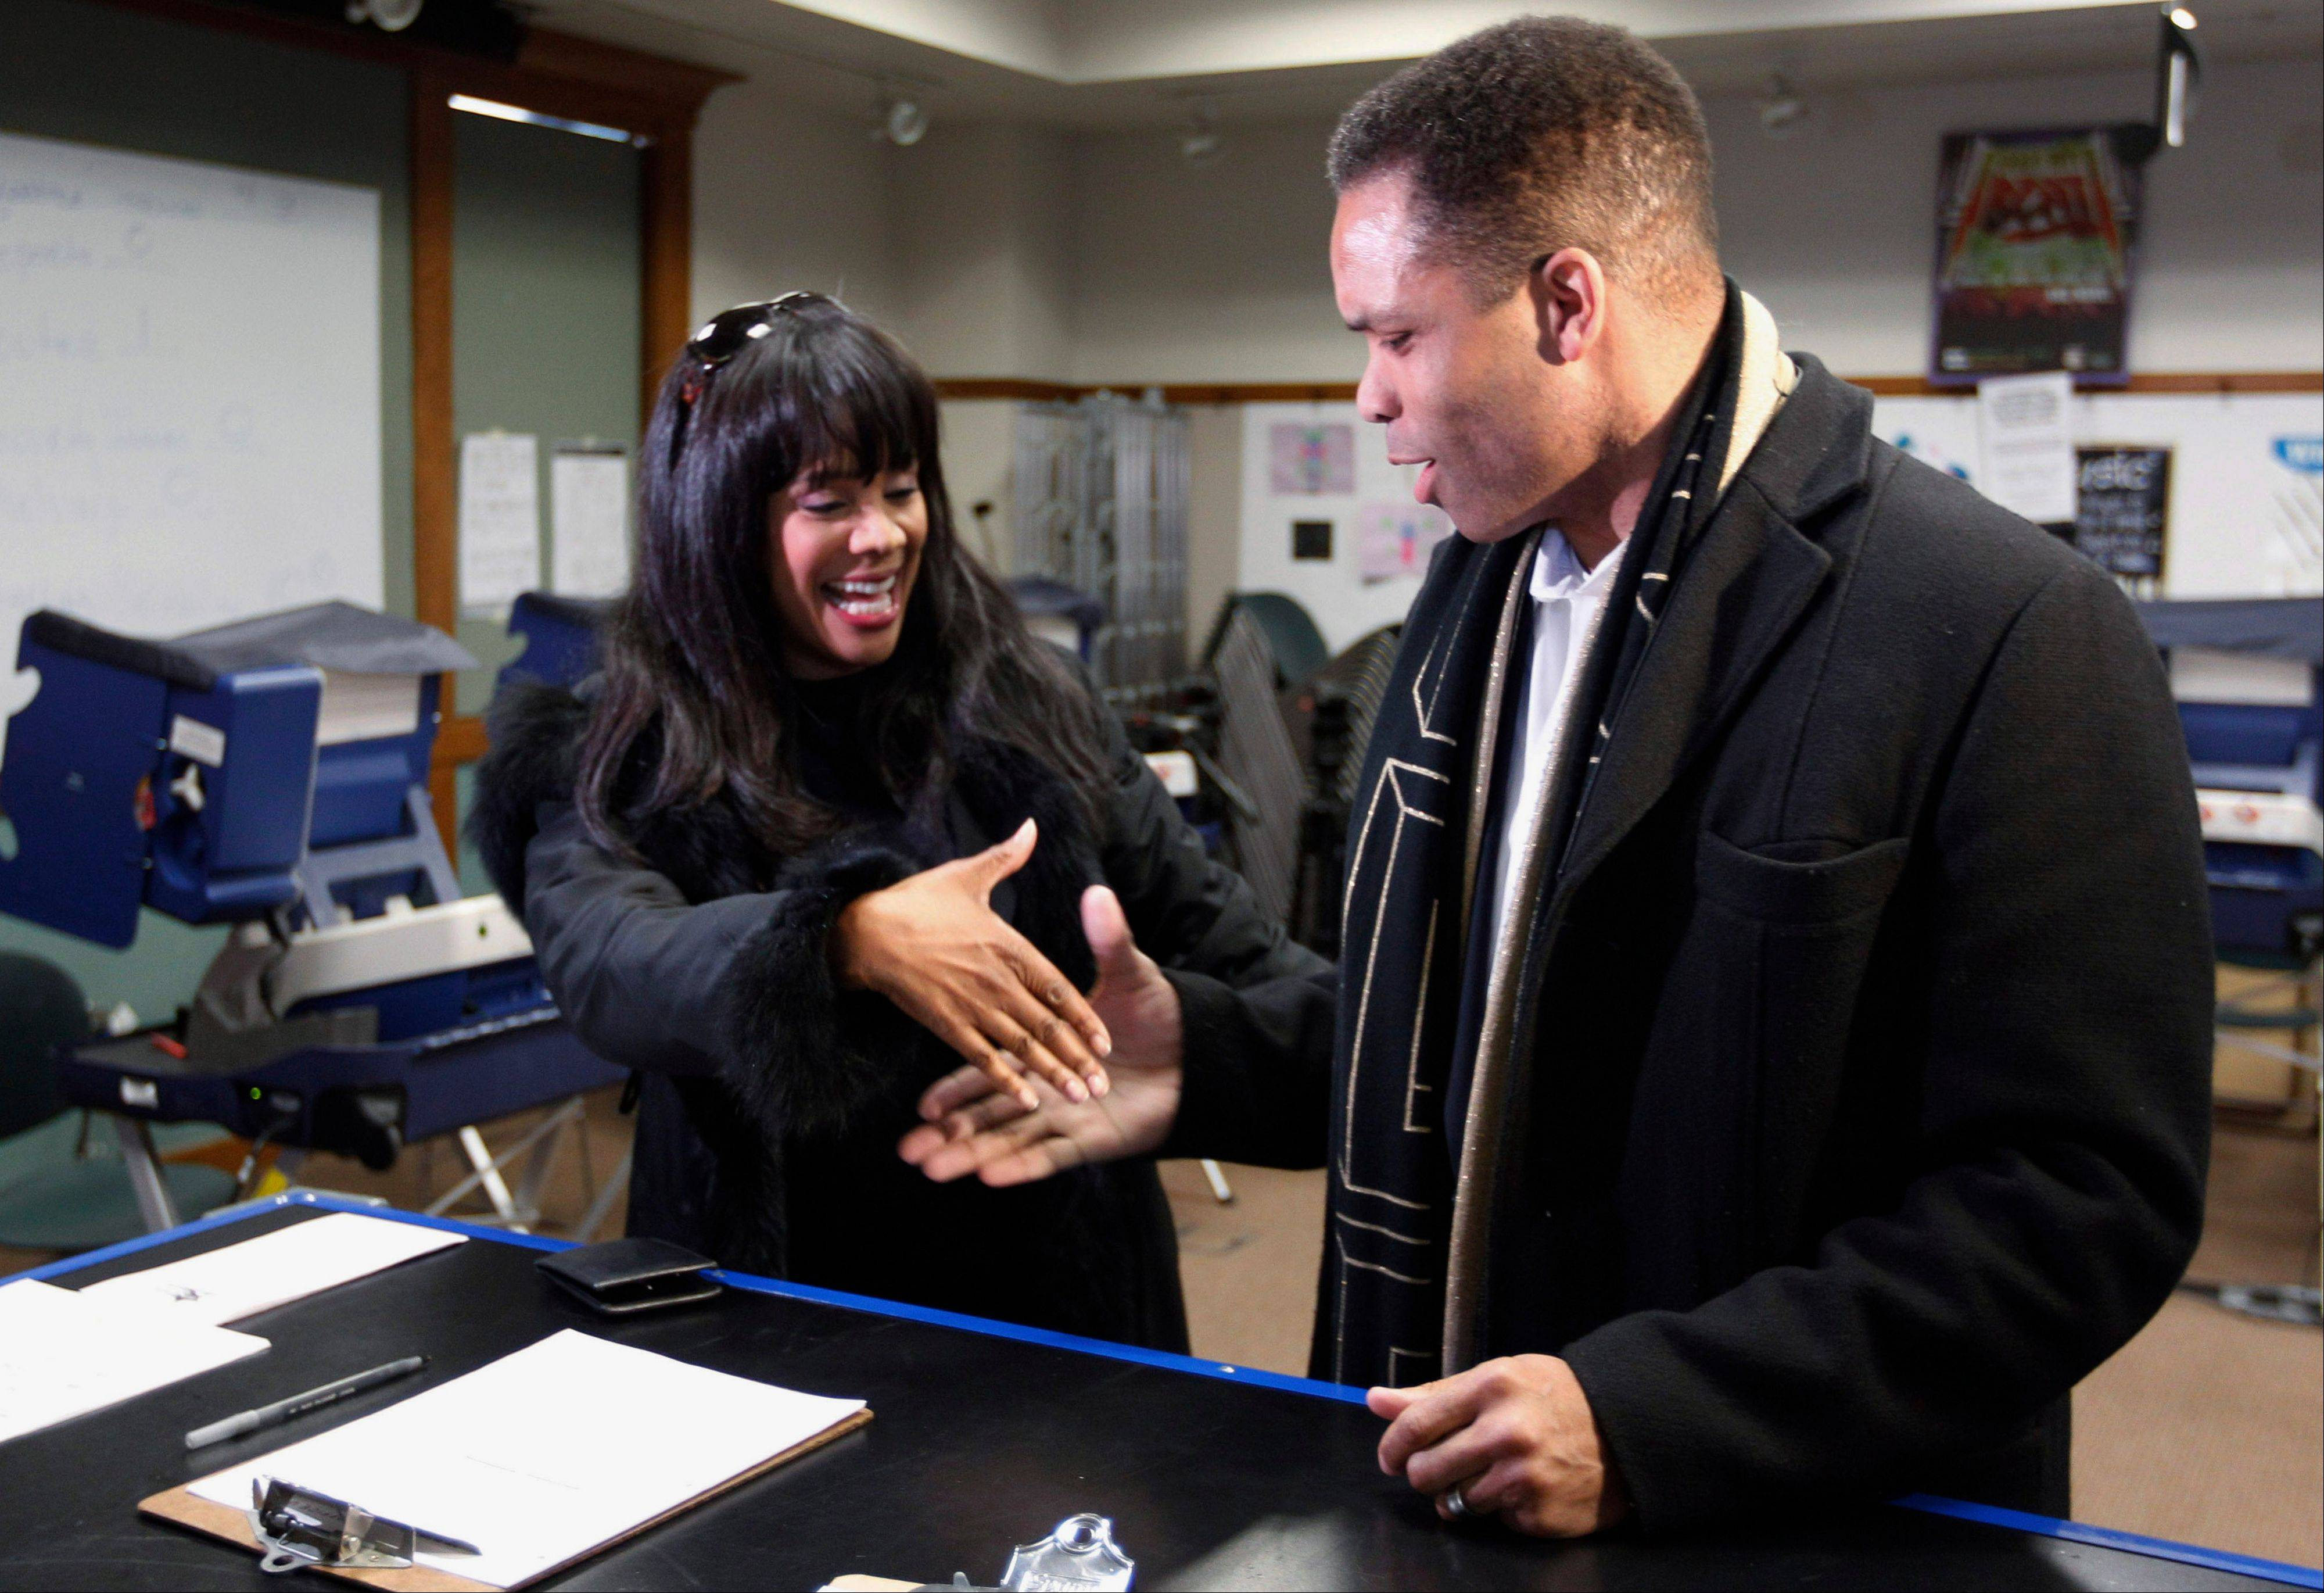 Then-Rep. Jesse Jackson Jr. and his wife, then-Alderman Sandra Jackson, ask for each other�s support as they arrive at a polling station for early voting last March in Chicago.